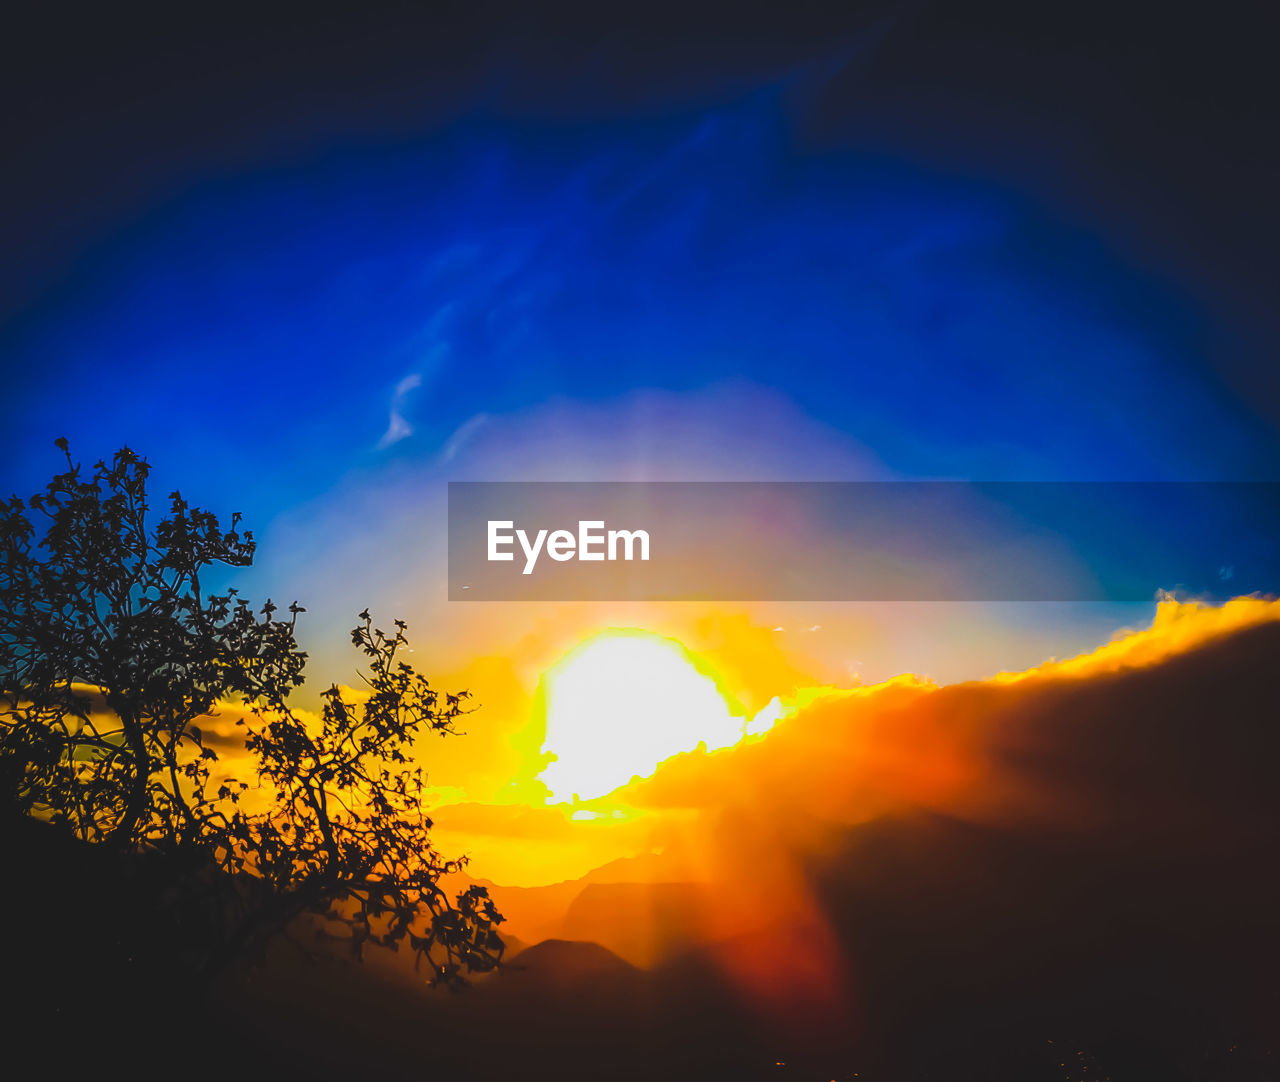 sunset, sky, beauty in nature, orange color, scenics - nature, tree, silhouette, plant, cloud - sky, tranquility, nature, tranquil scene, no people, idyllic, sunlight, low angle view, sun, outdoors, yellow, blue